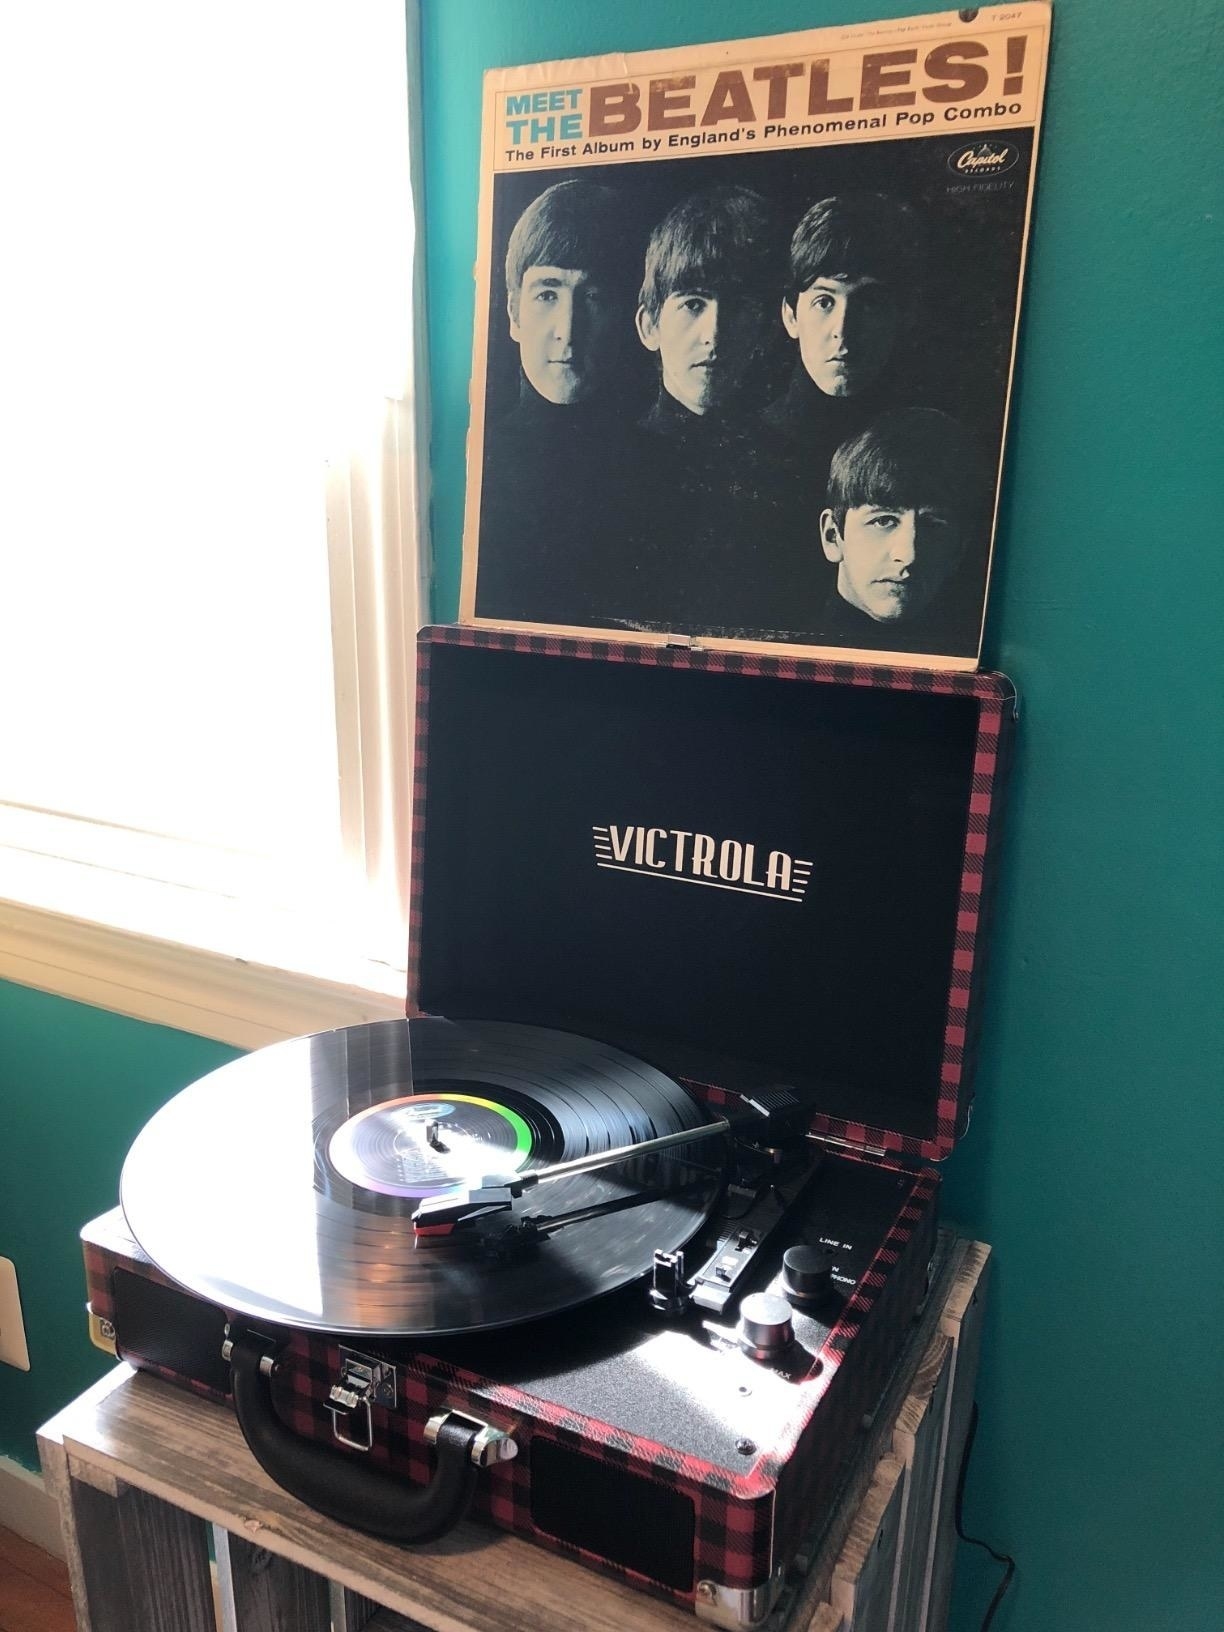 A record player playing Meet the Beatles